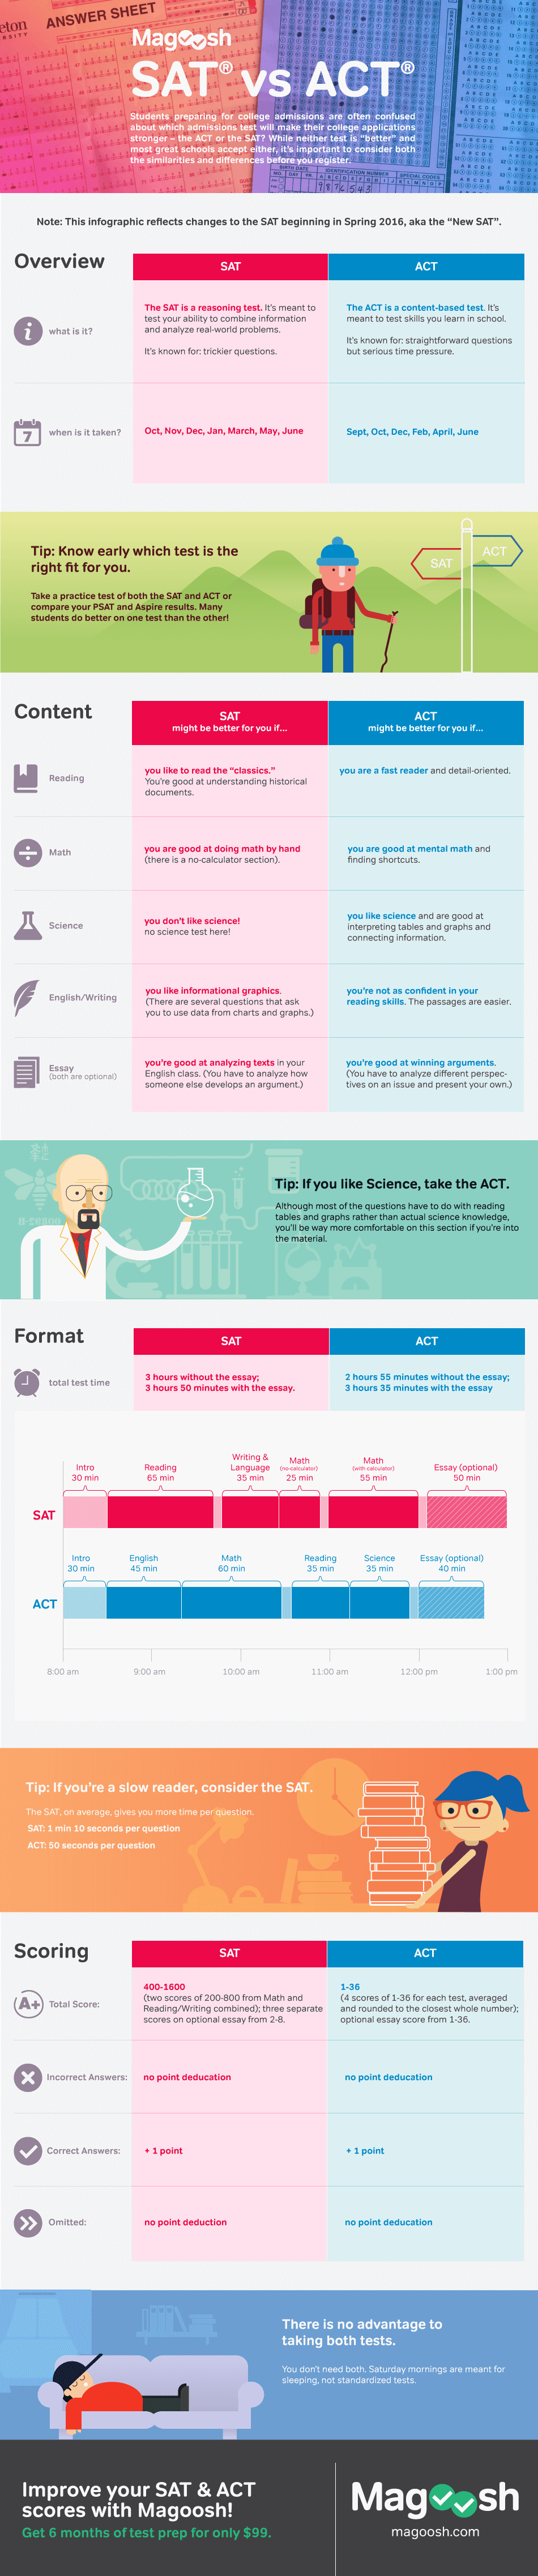 ACT vs SAT Infographic from Magoosh